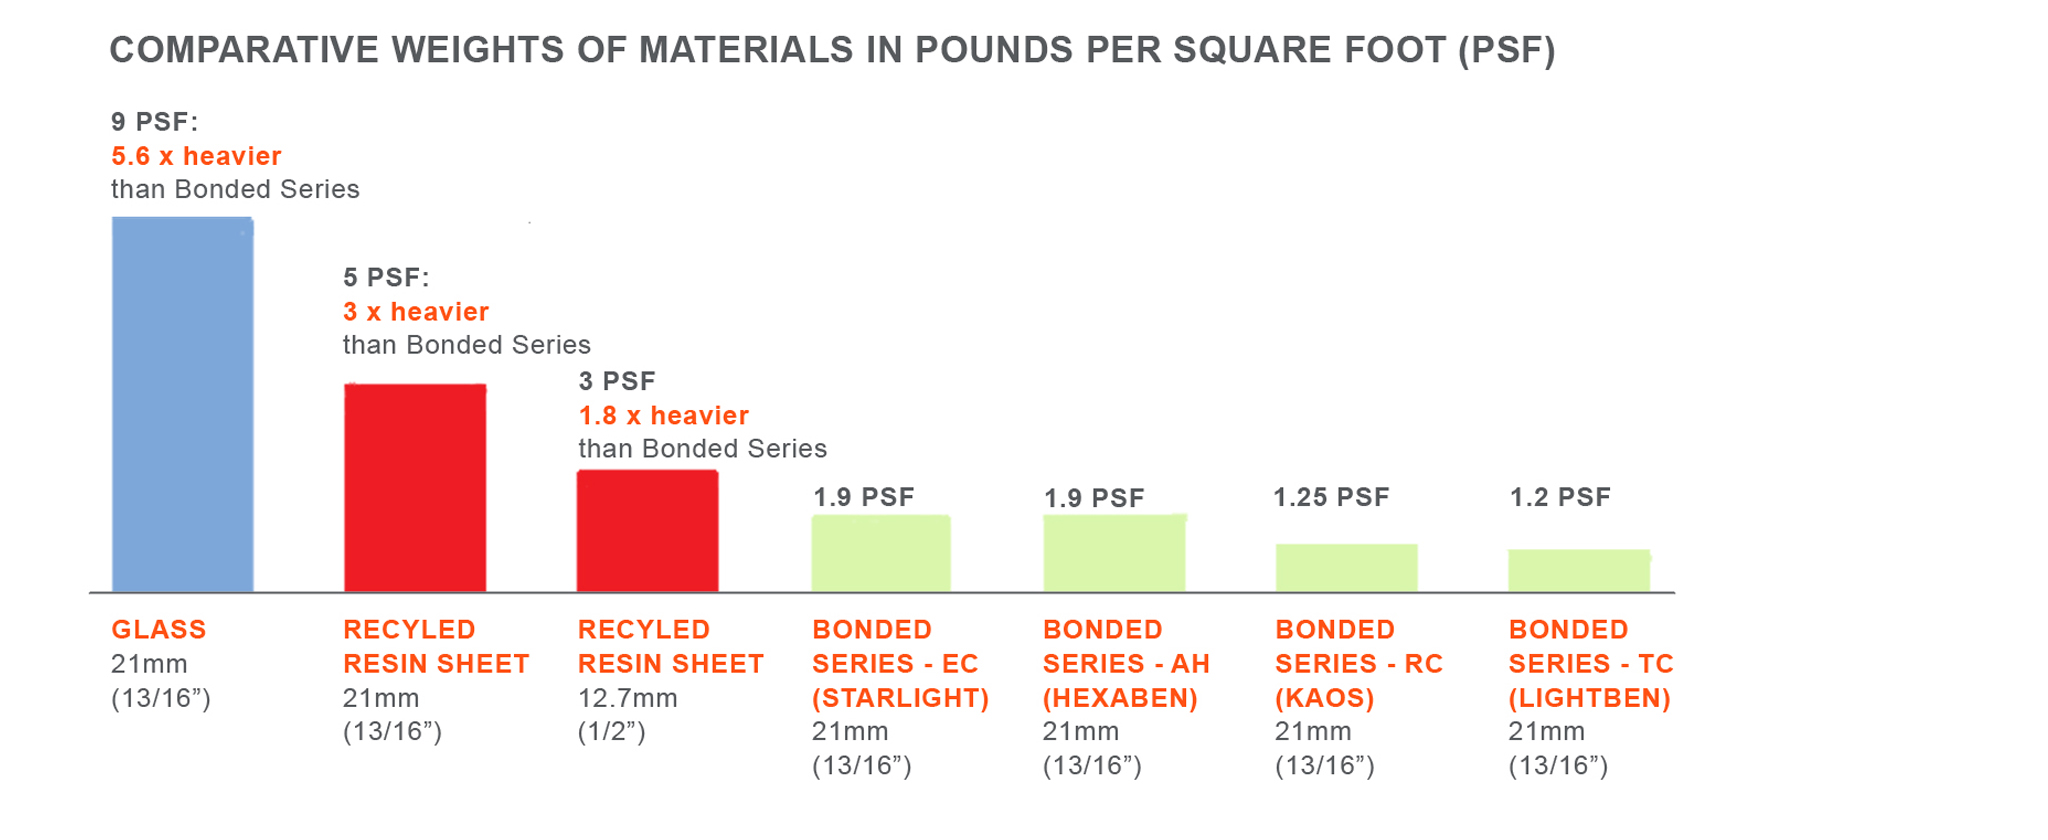 Comparative weights of honeycomb glass and resin in PSF 2